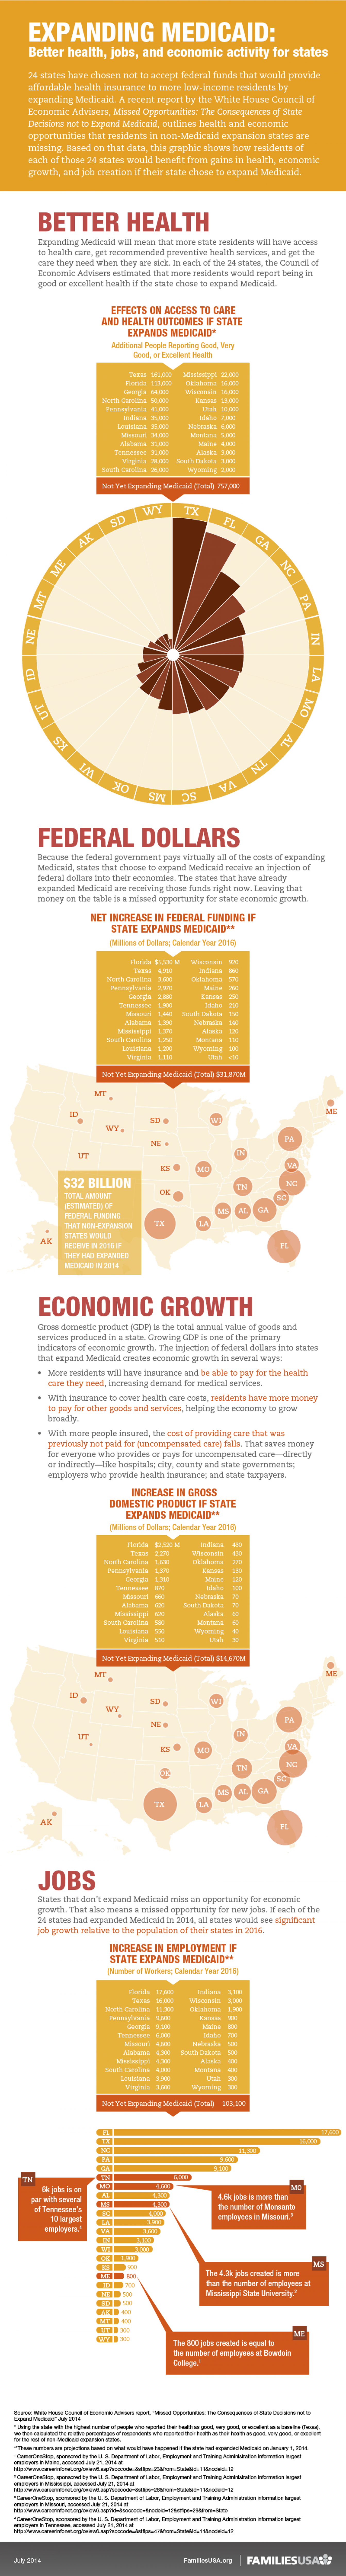 State Medicaid Expansion Data - 2014 Infographic